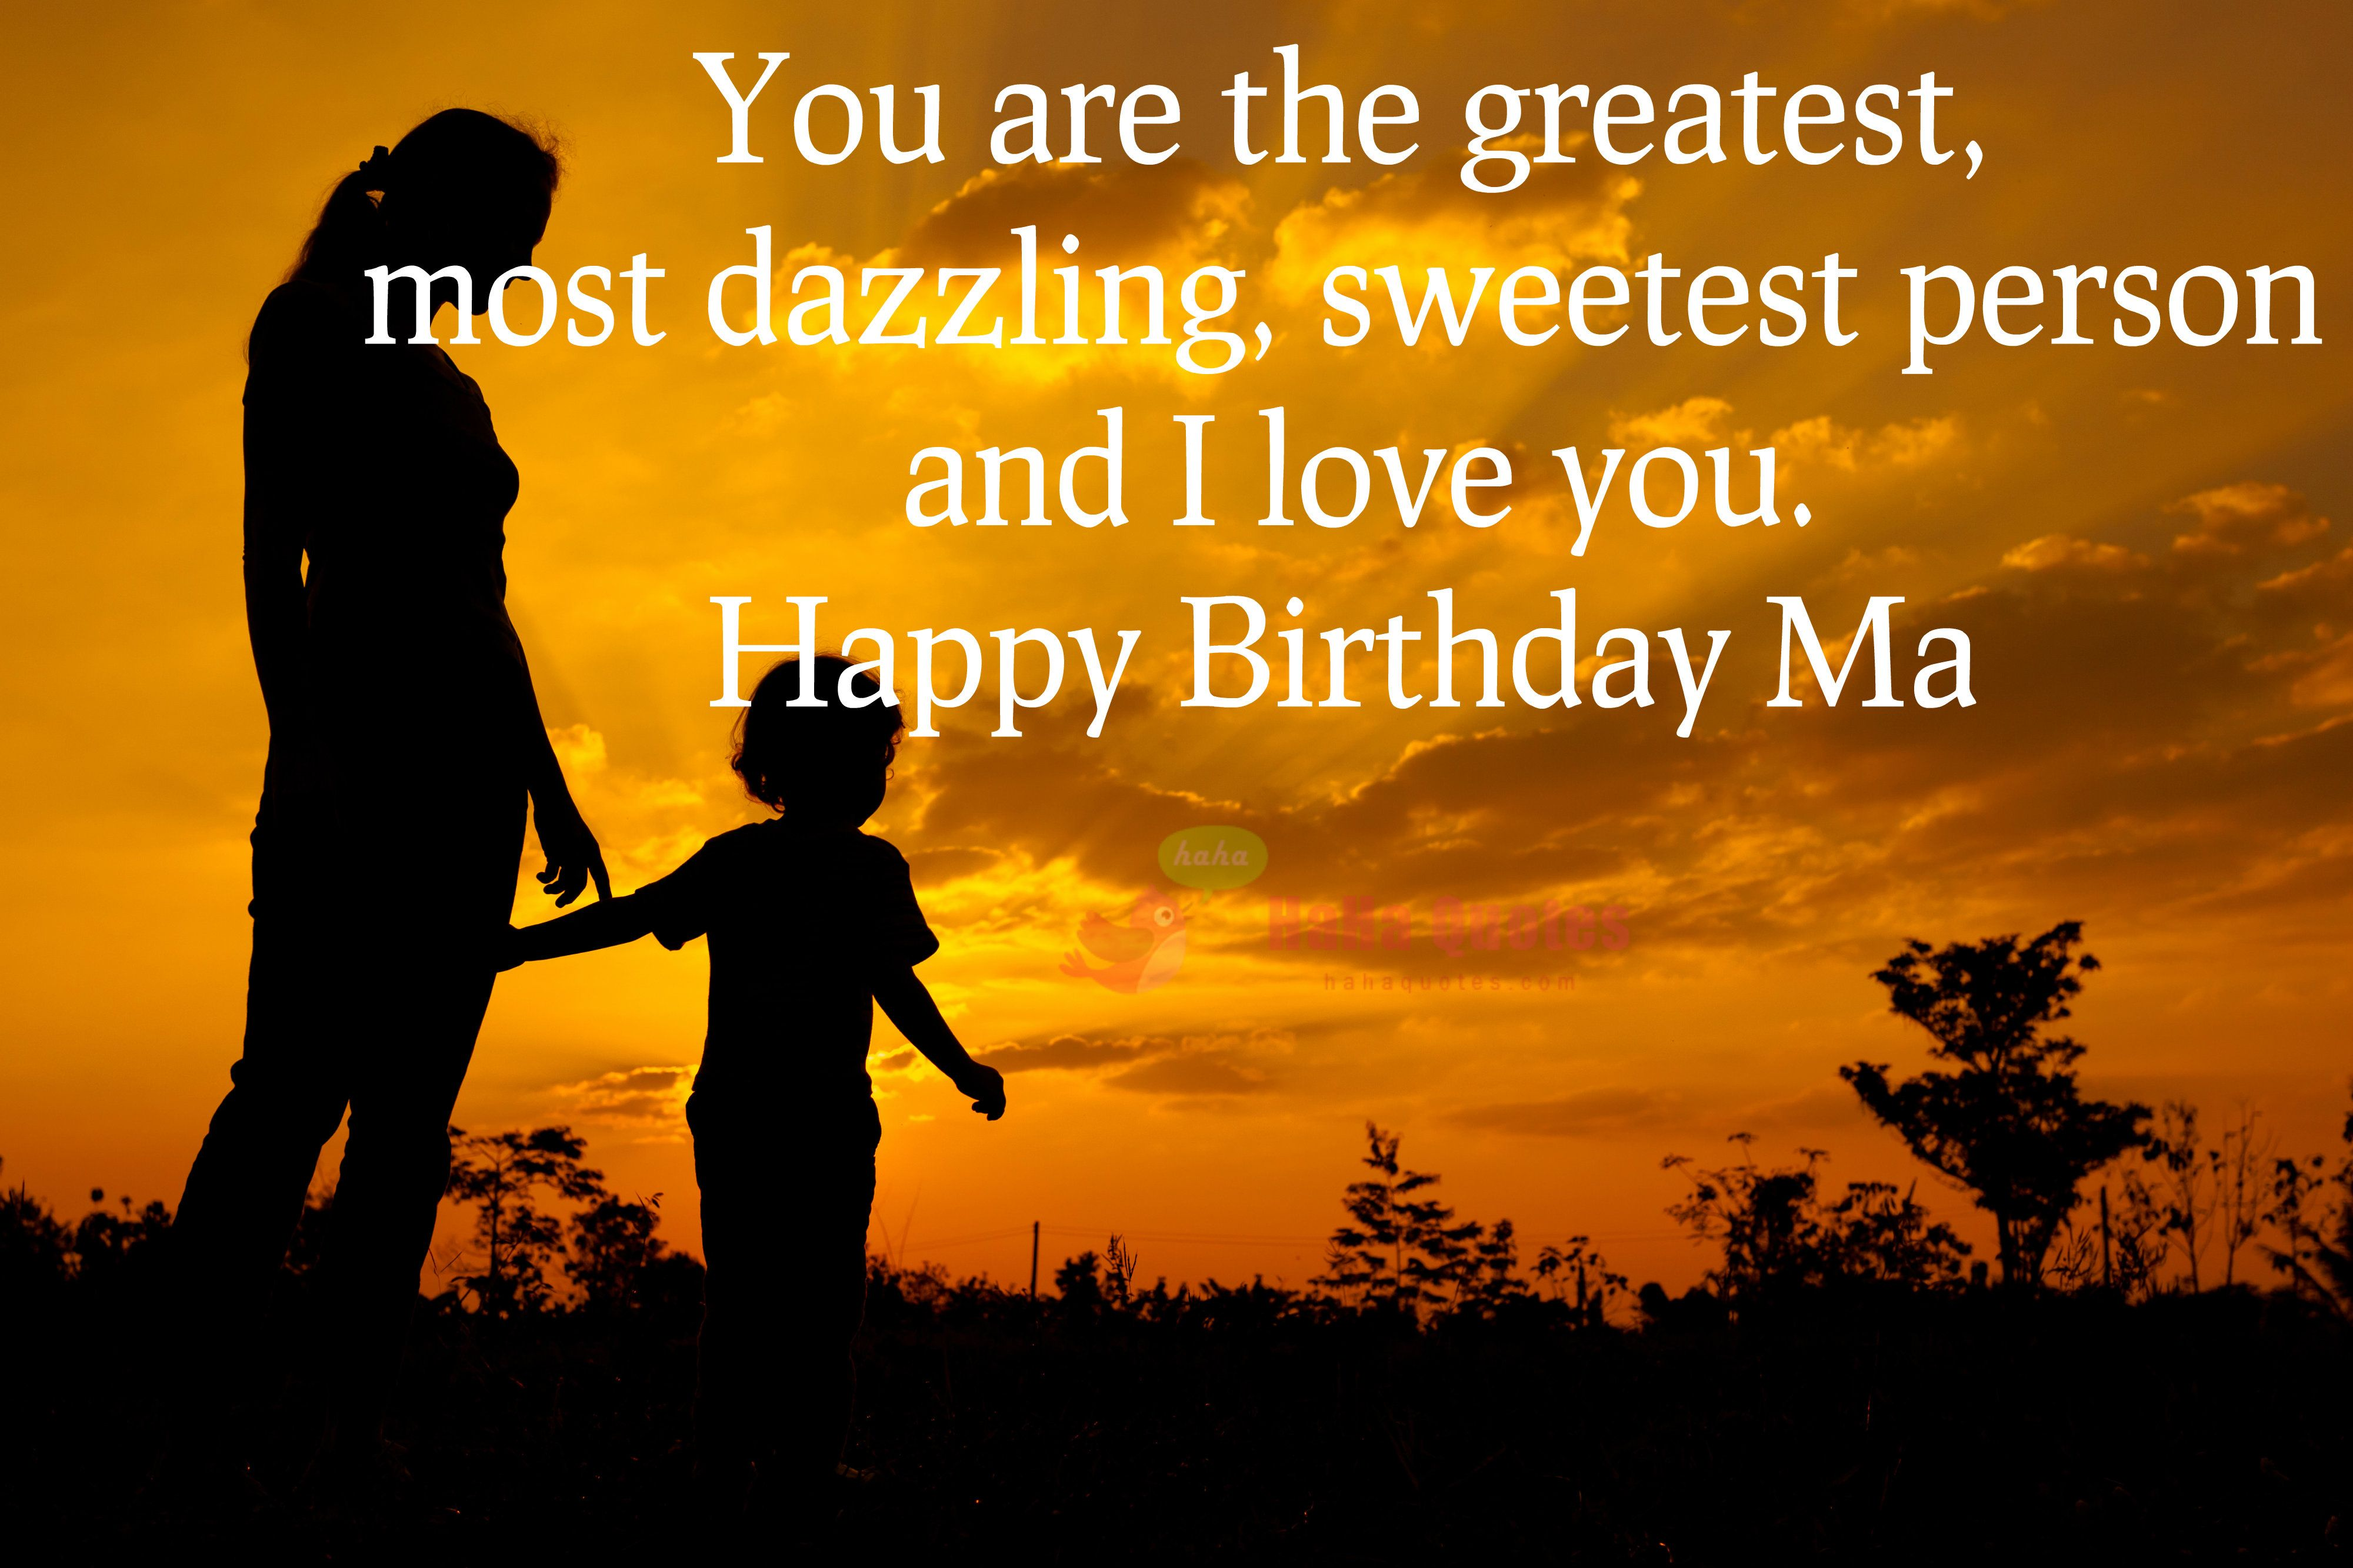 Happy birthday wishes for mother from daughterson with